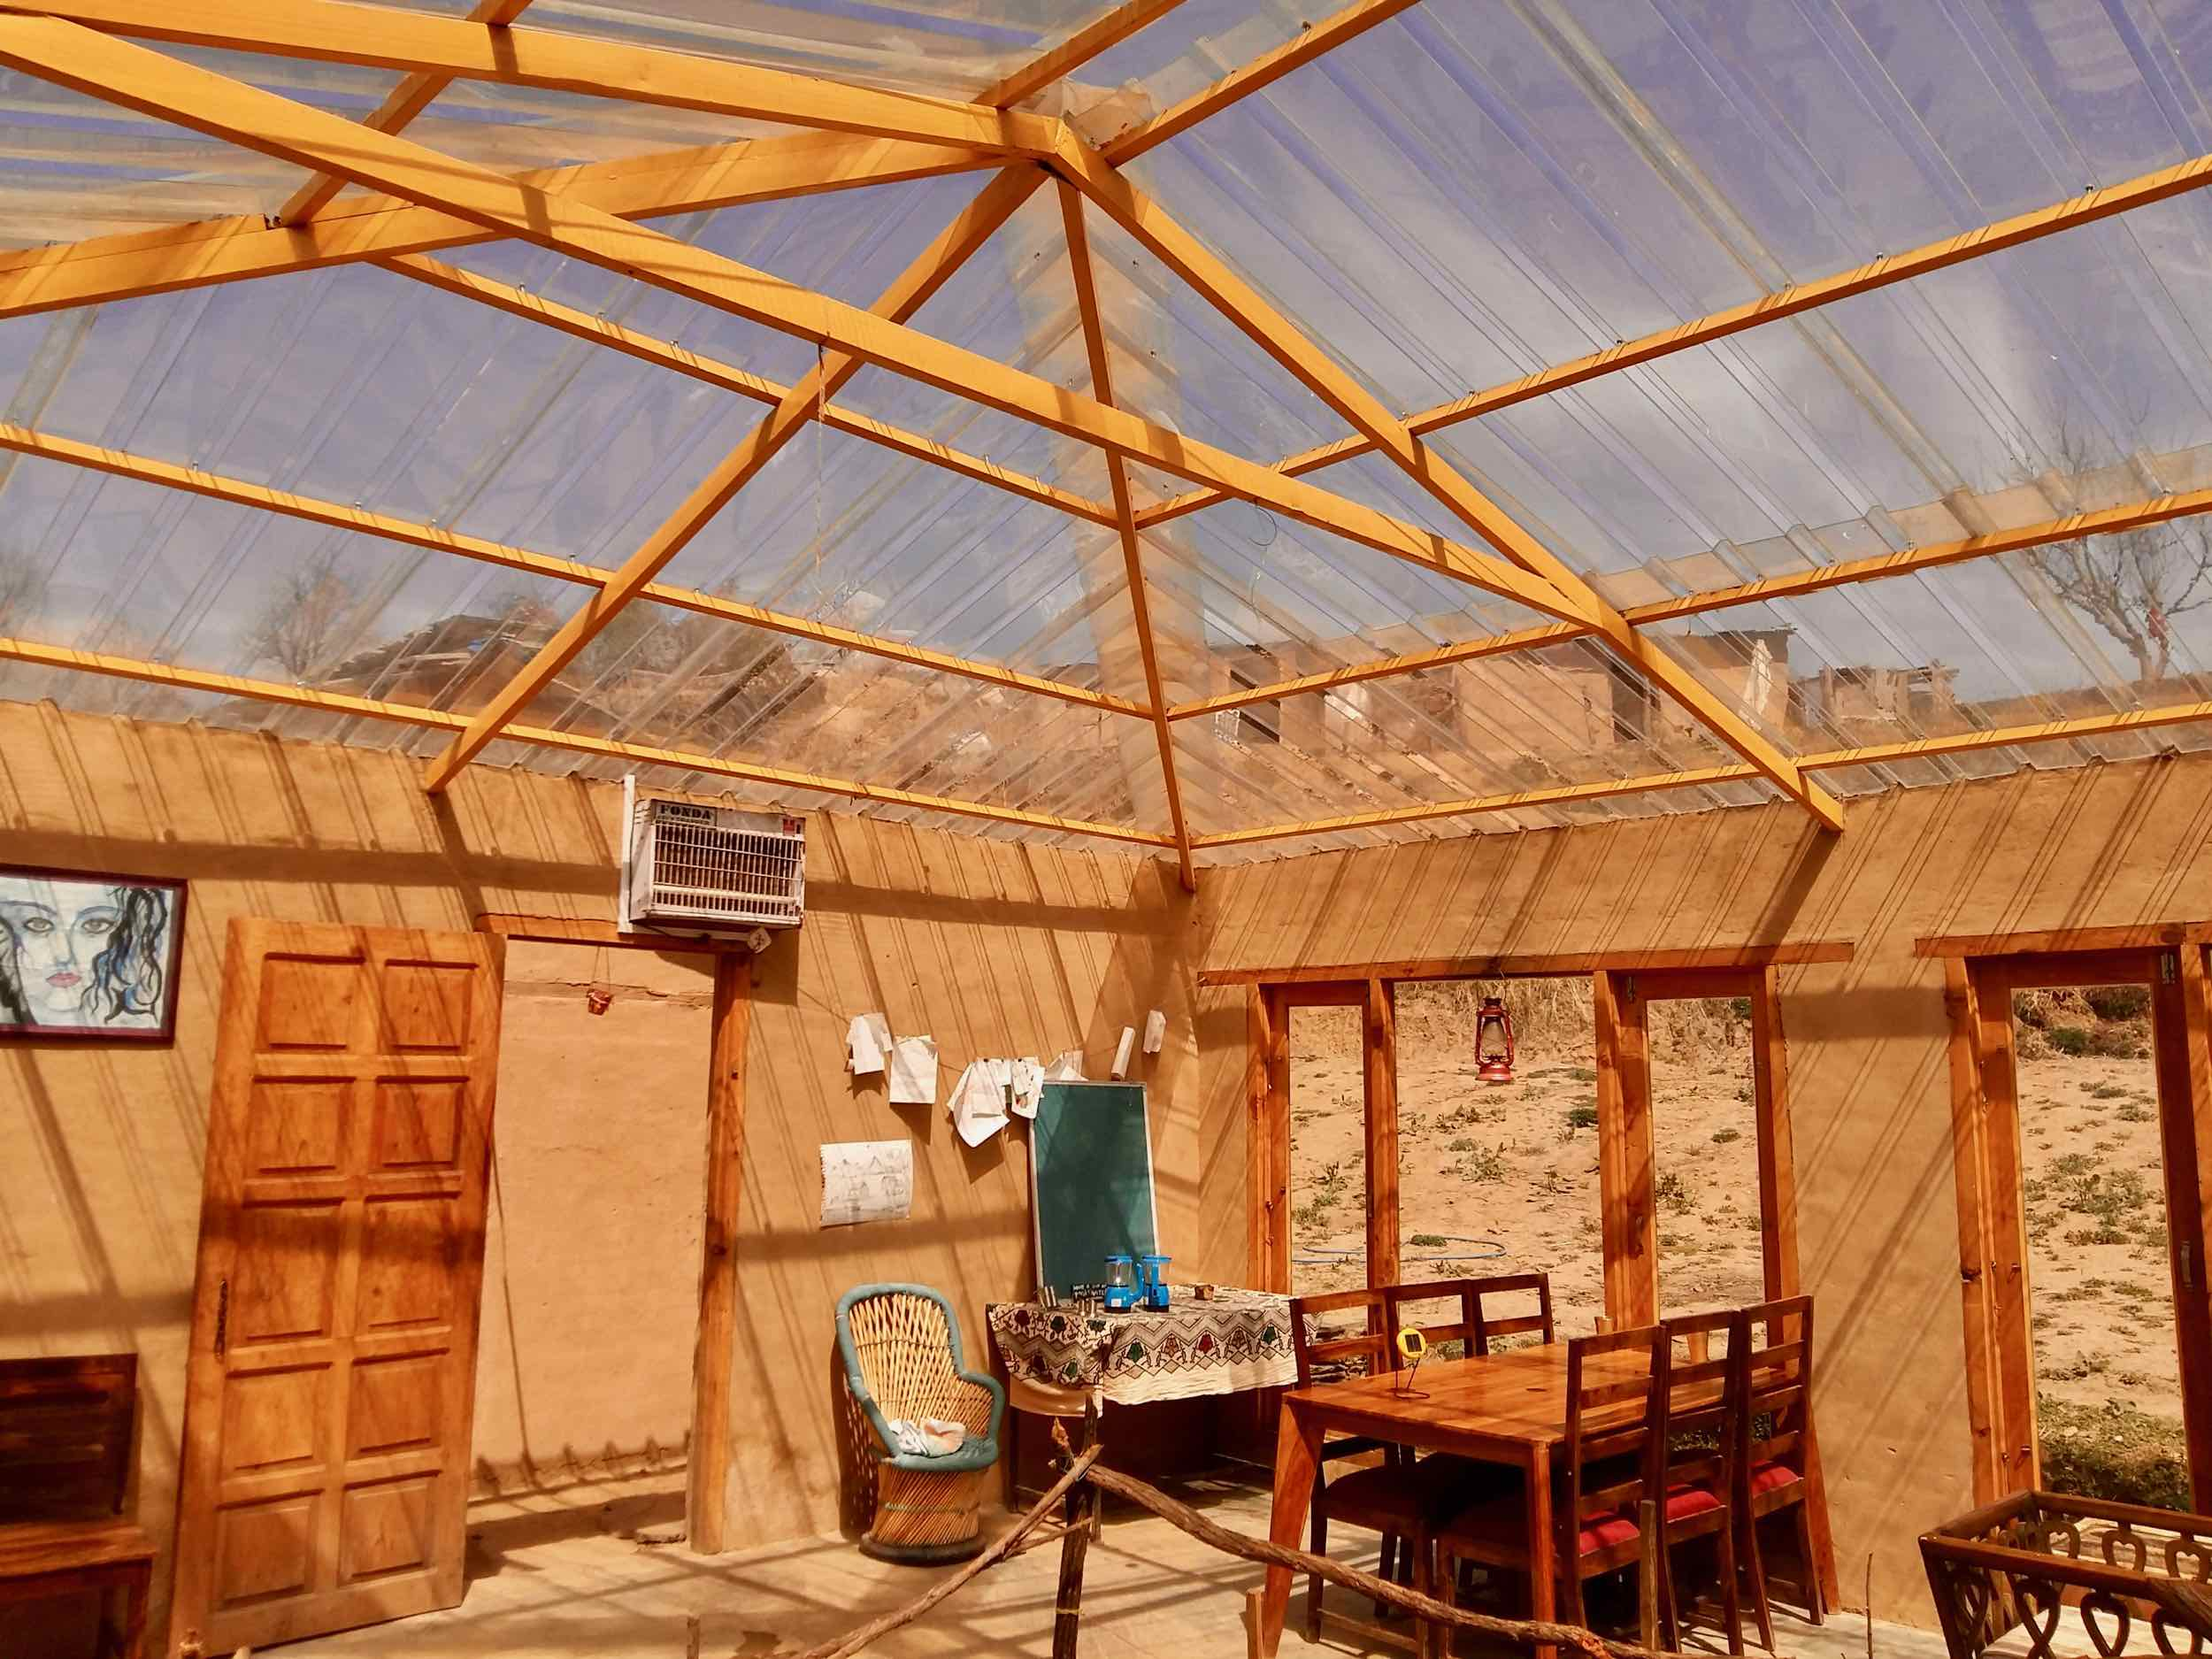 The rustic Goat Village resort's common room. We loved the transparent ceiling that acts as a glasshouse during the day and permits sky gazing during the night. Note the rustic setting.